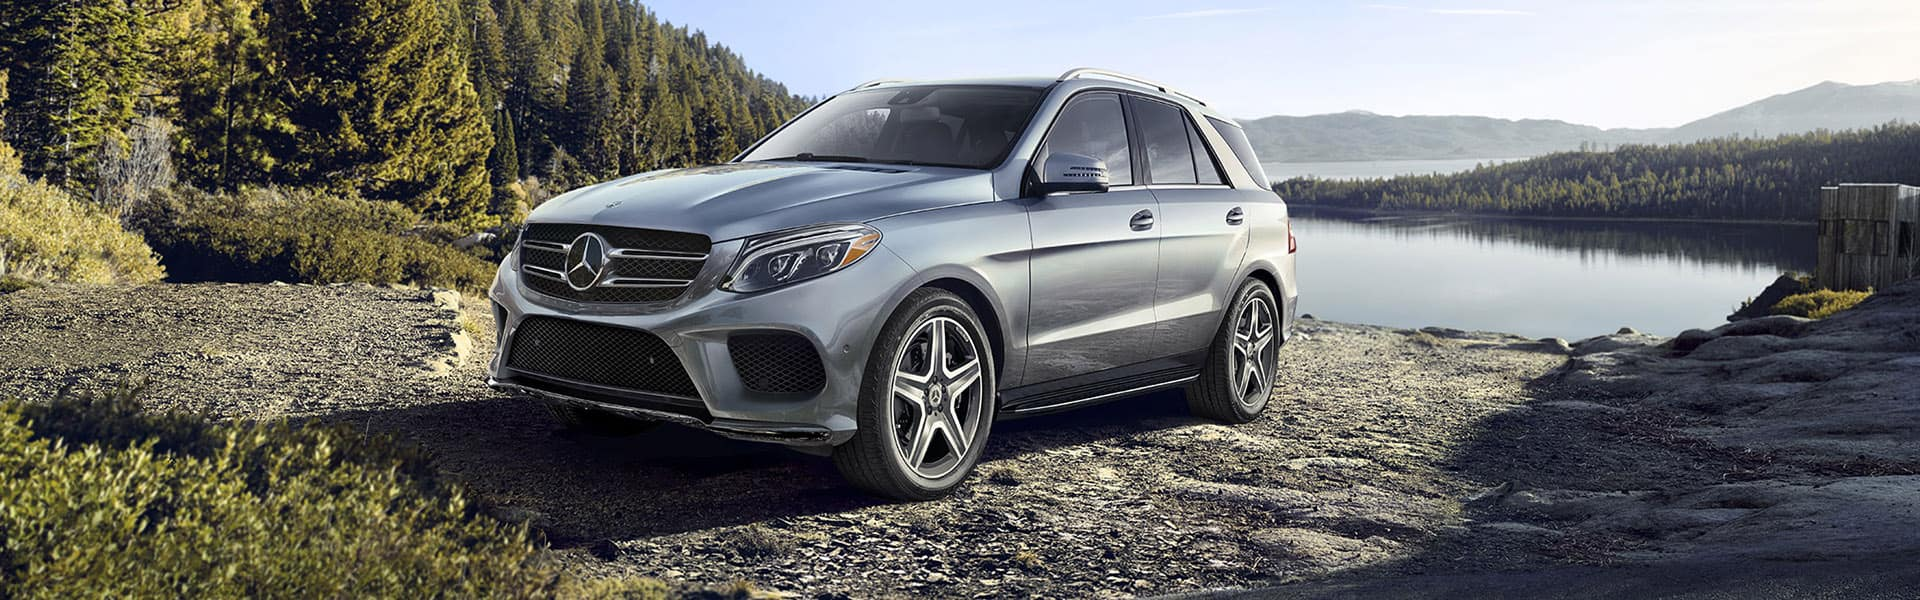 2019 Mercedes-Benz GLE Hero